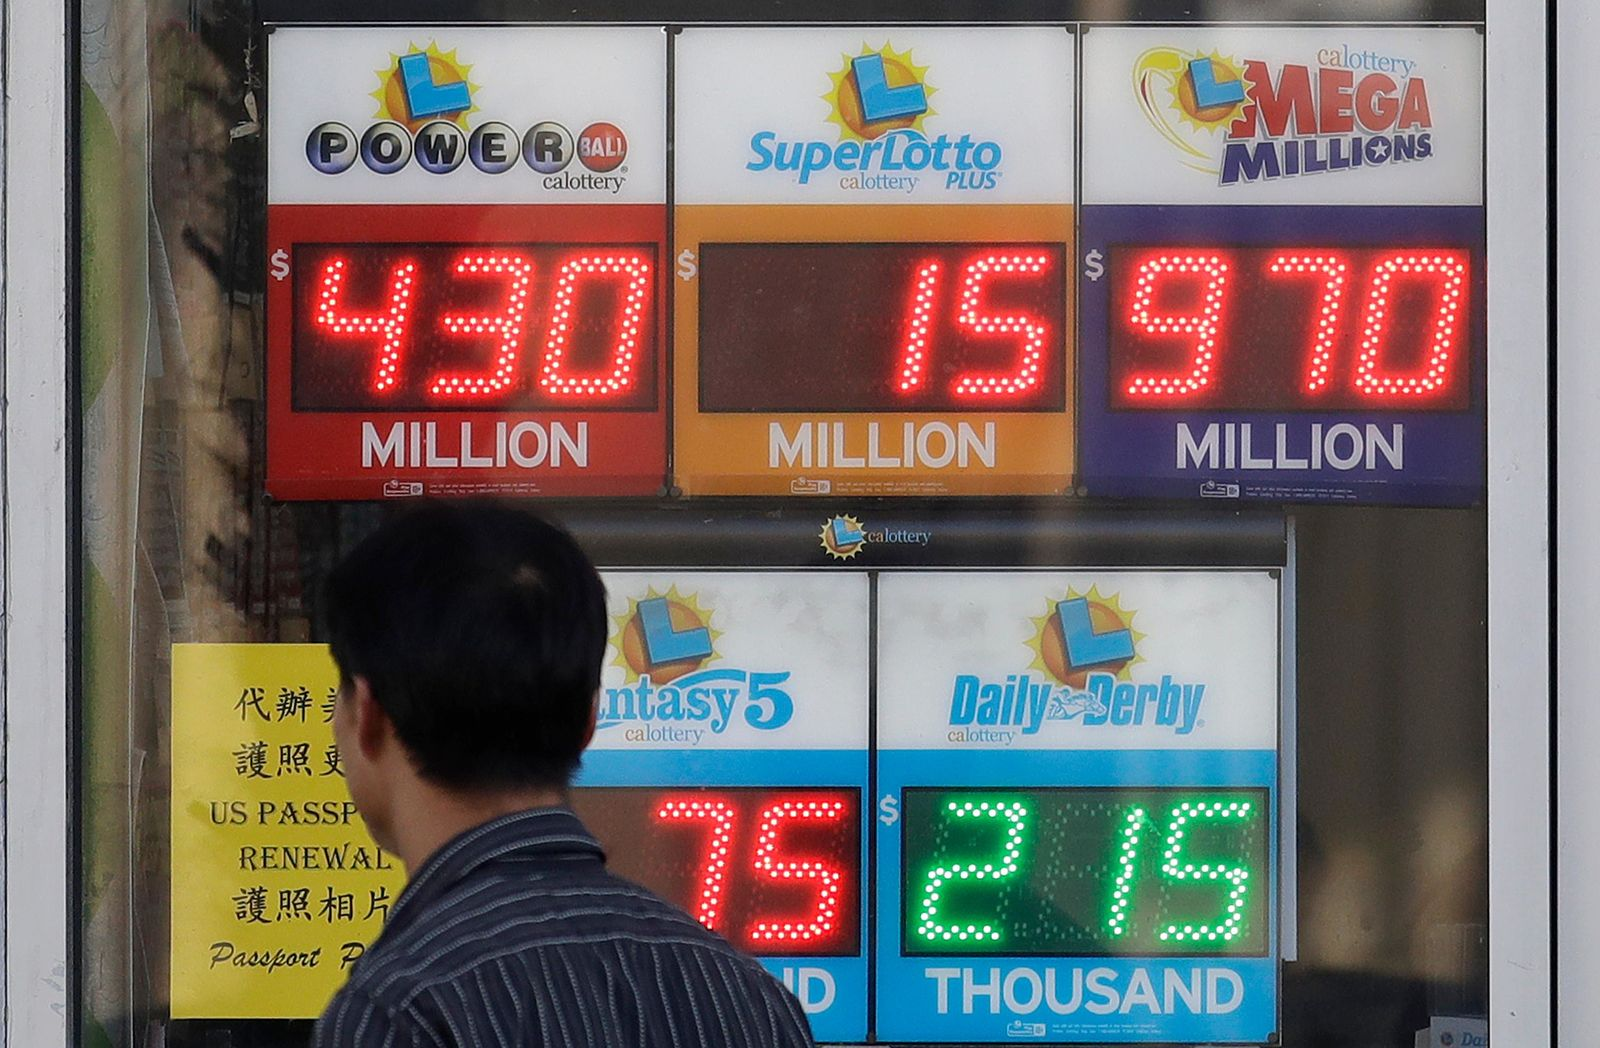 A man walks past Mega Millions and other lottery displays outside of The Lucky Spot in San Francisco, Thursday, Oct. 18, 2018. The Mega Millions jackpot has climbed to $970 million, inching ever-closer to the $1 billion mark. (AP Photo/Jeff Chiu)